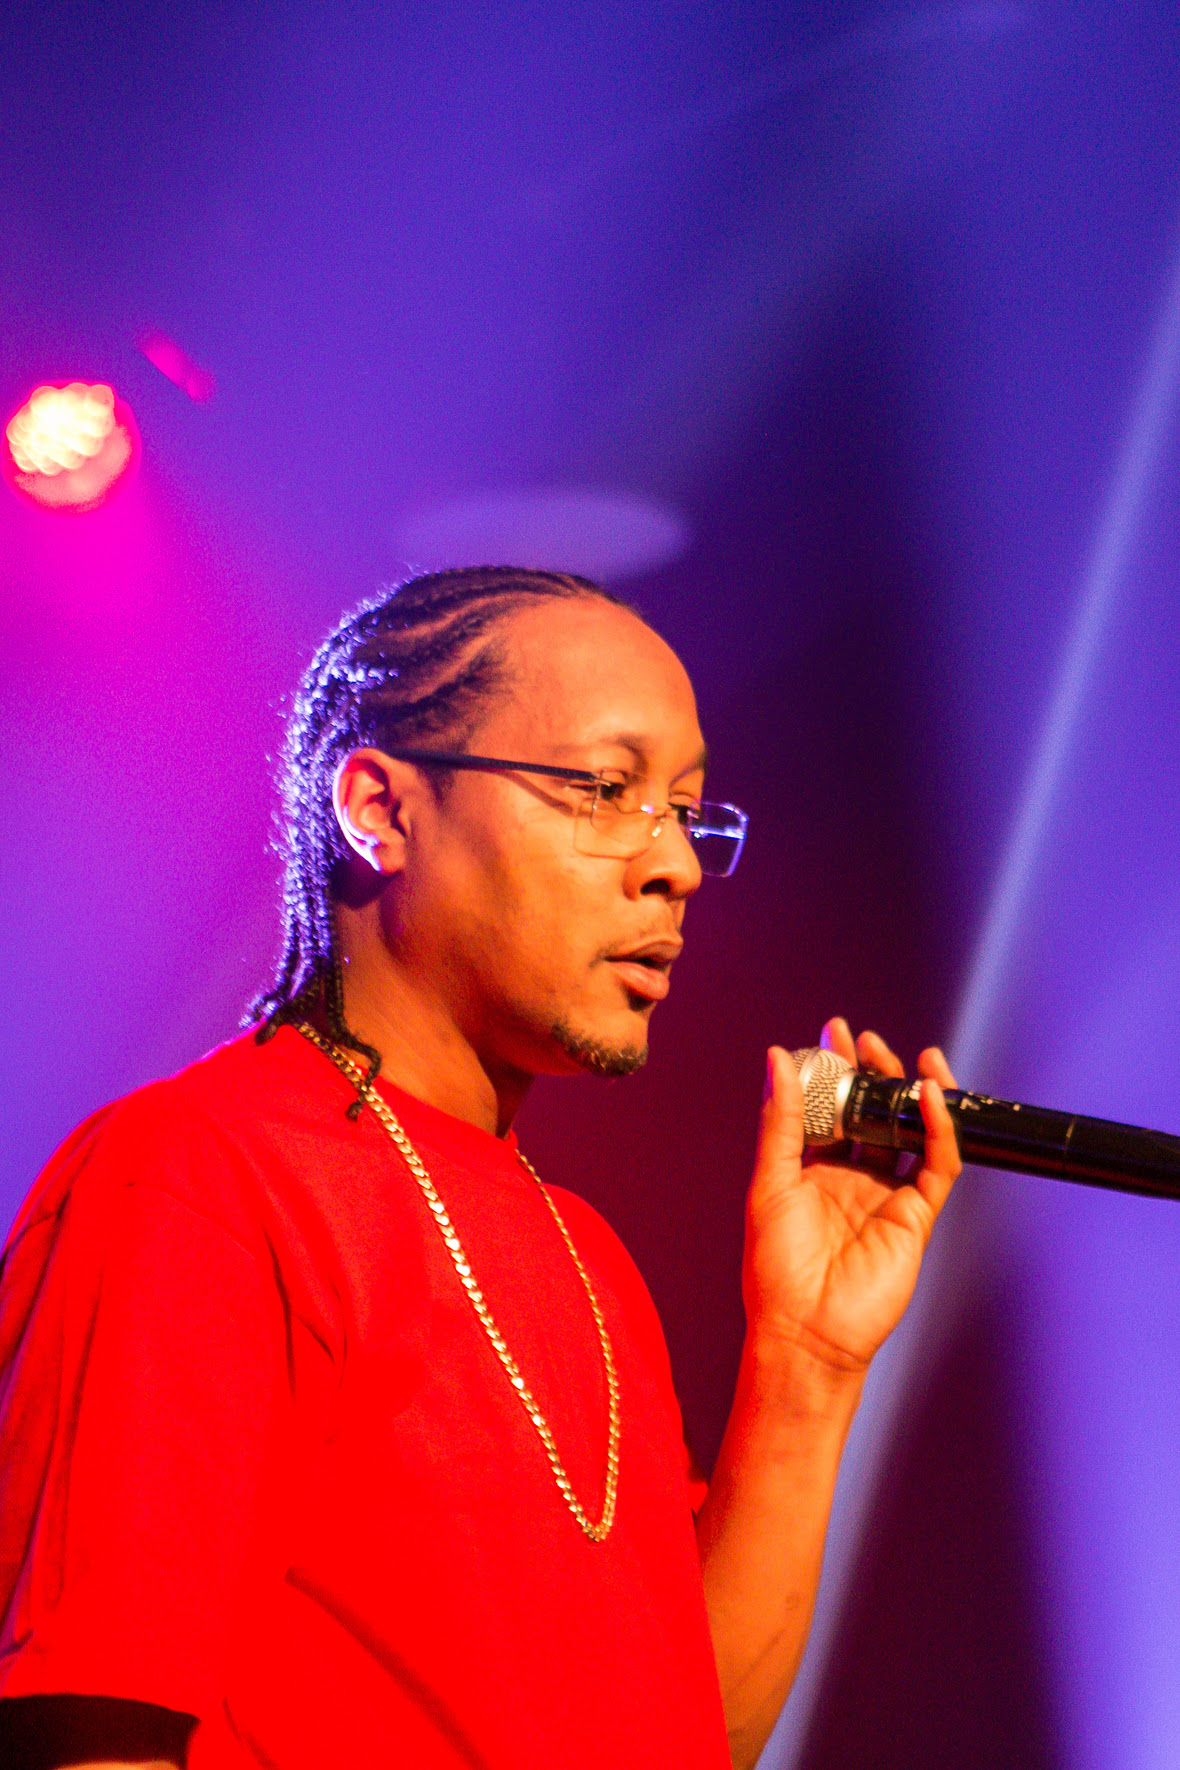 Designer Tv Shows Dj Quik Performs For 2 Million On Amazon Fire Tv